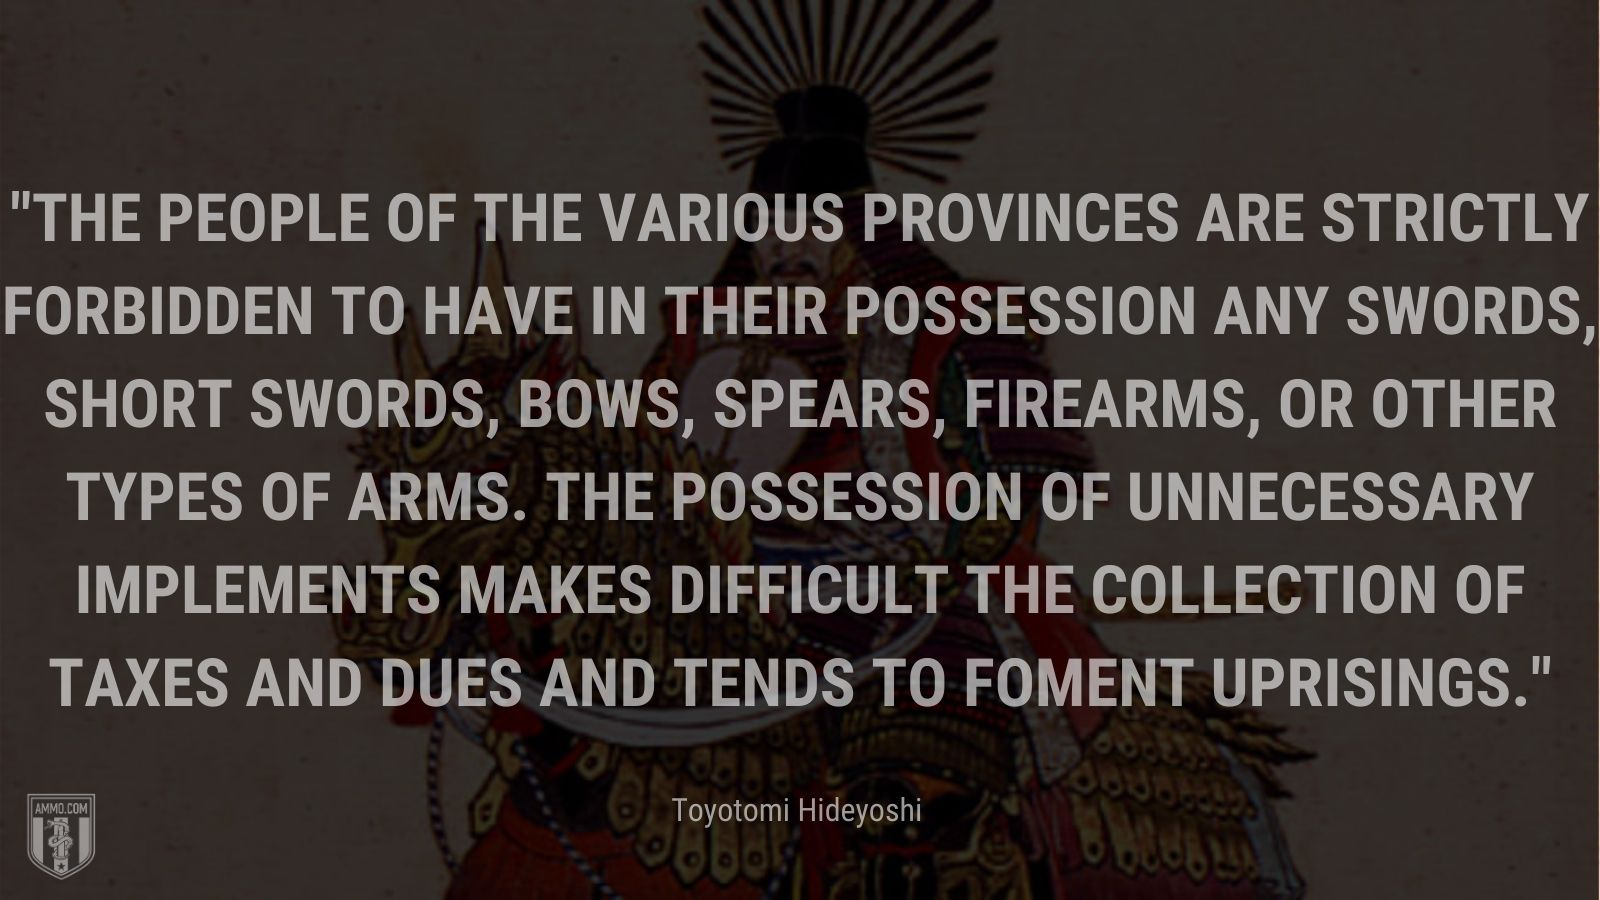 """""""The people of the various provinces are strictly forbidden to have in their possession any swords, short swords, bows, spears, firearms, or other types of arms. The possession of unnecessary implements makes difficult the collection of taxes and dues and tends to foment uprisings."""" -Toyotomi Hideyoshi"""